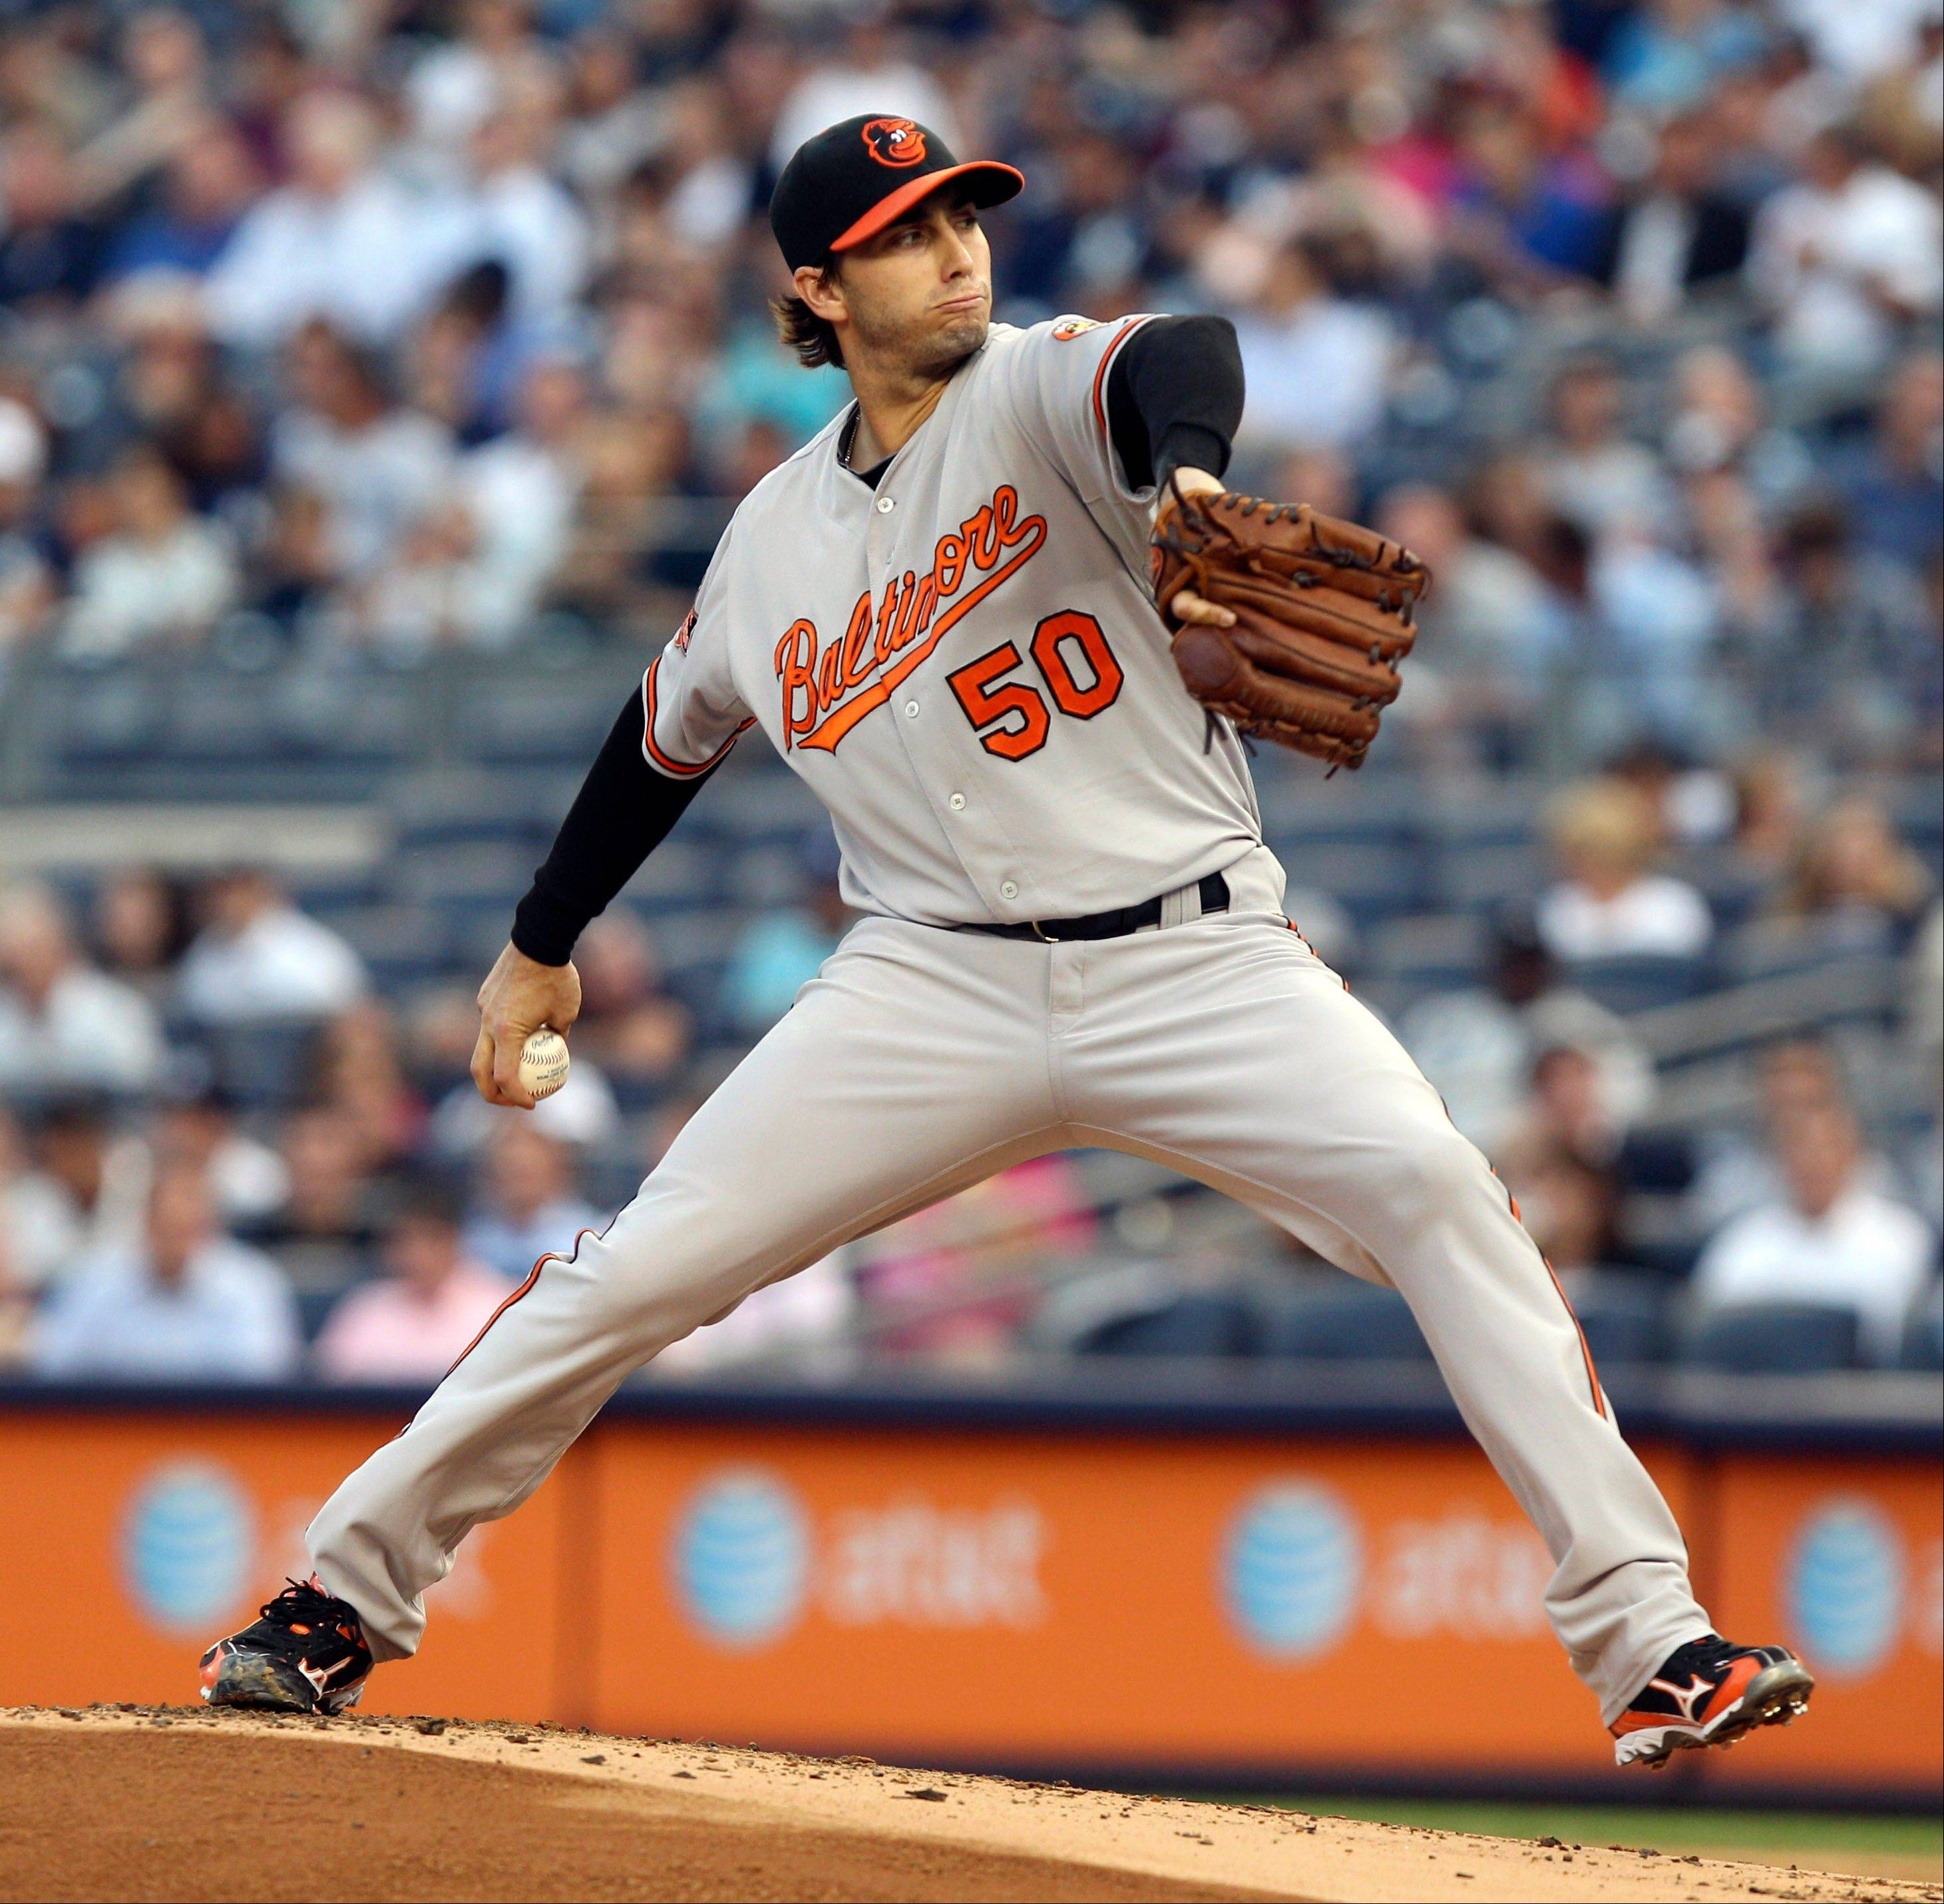 Orioles pitcher Miguel Gonzalez struck out a career-high eight without walking a batter Monday in New York.